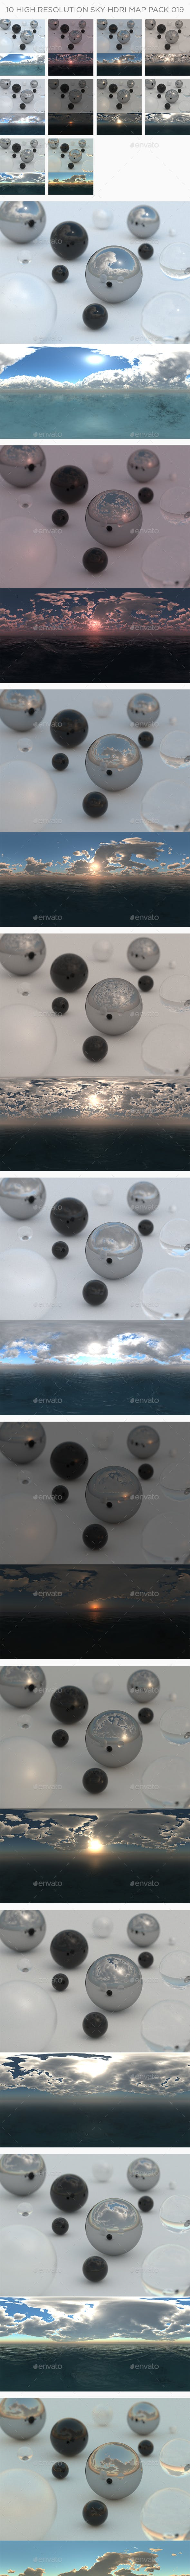 10 High Resolution Sky HDRi Maps Pack 019 - 3DOcean Item for Sale